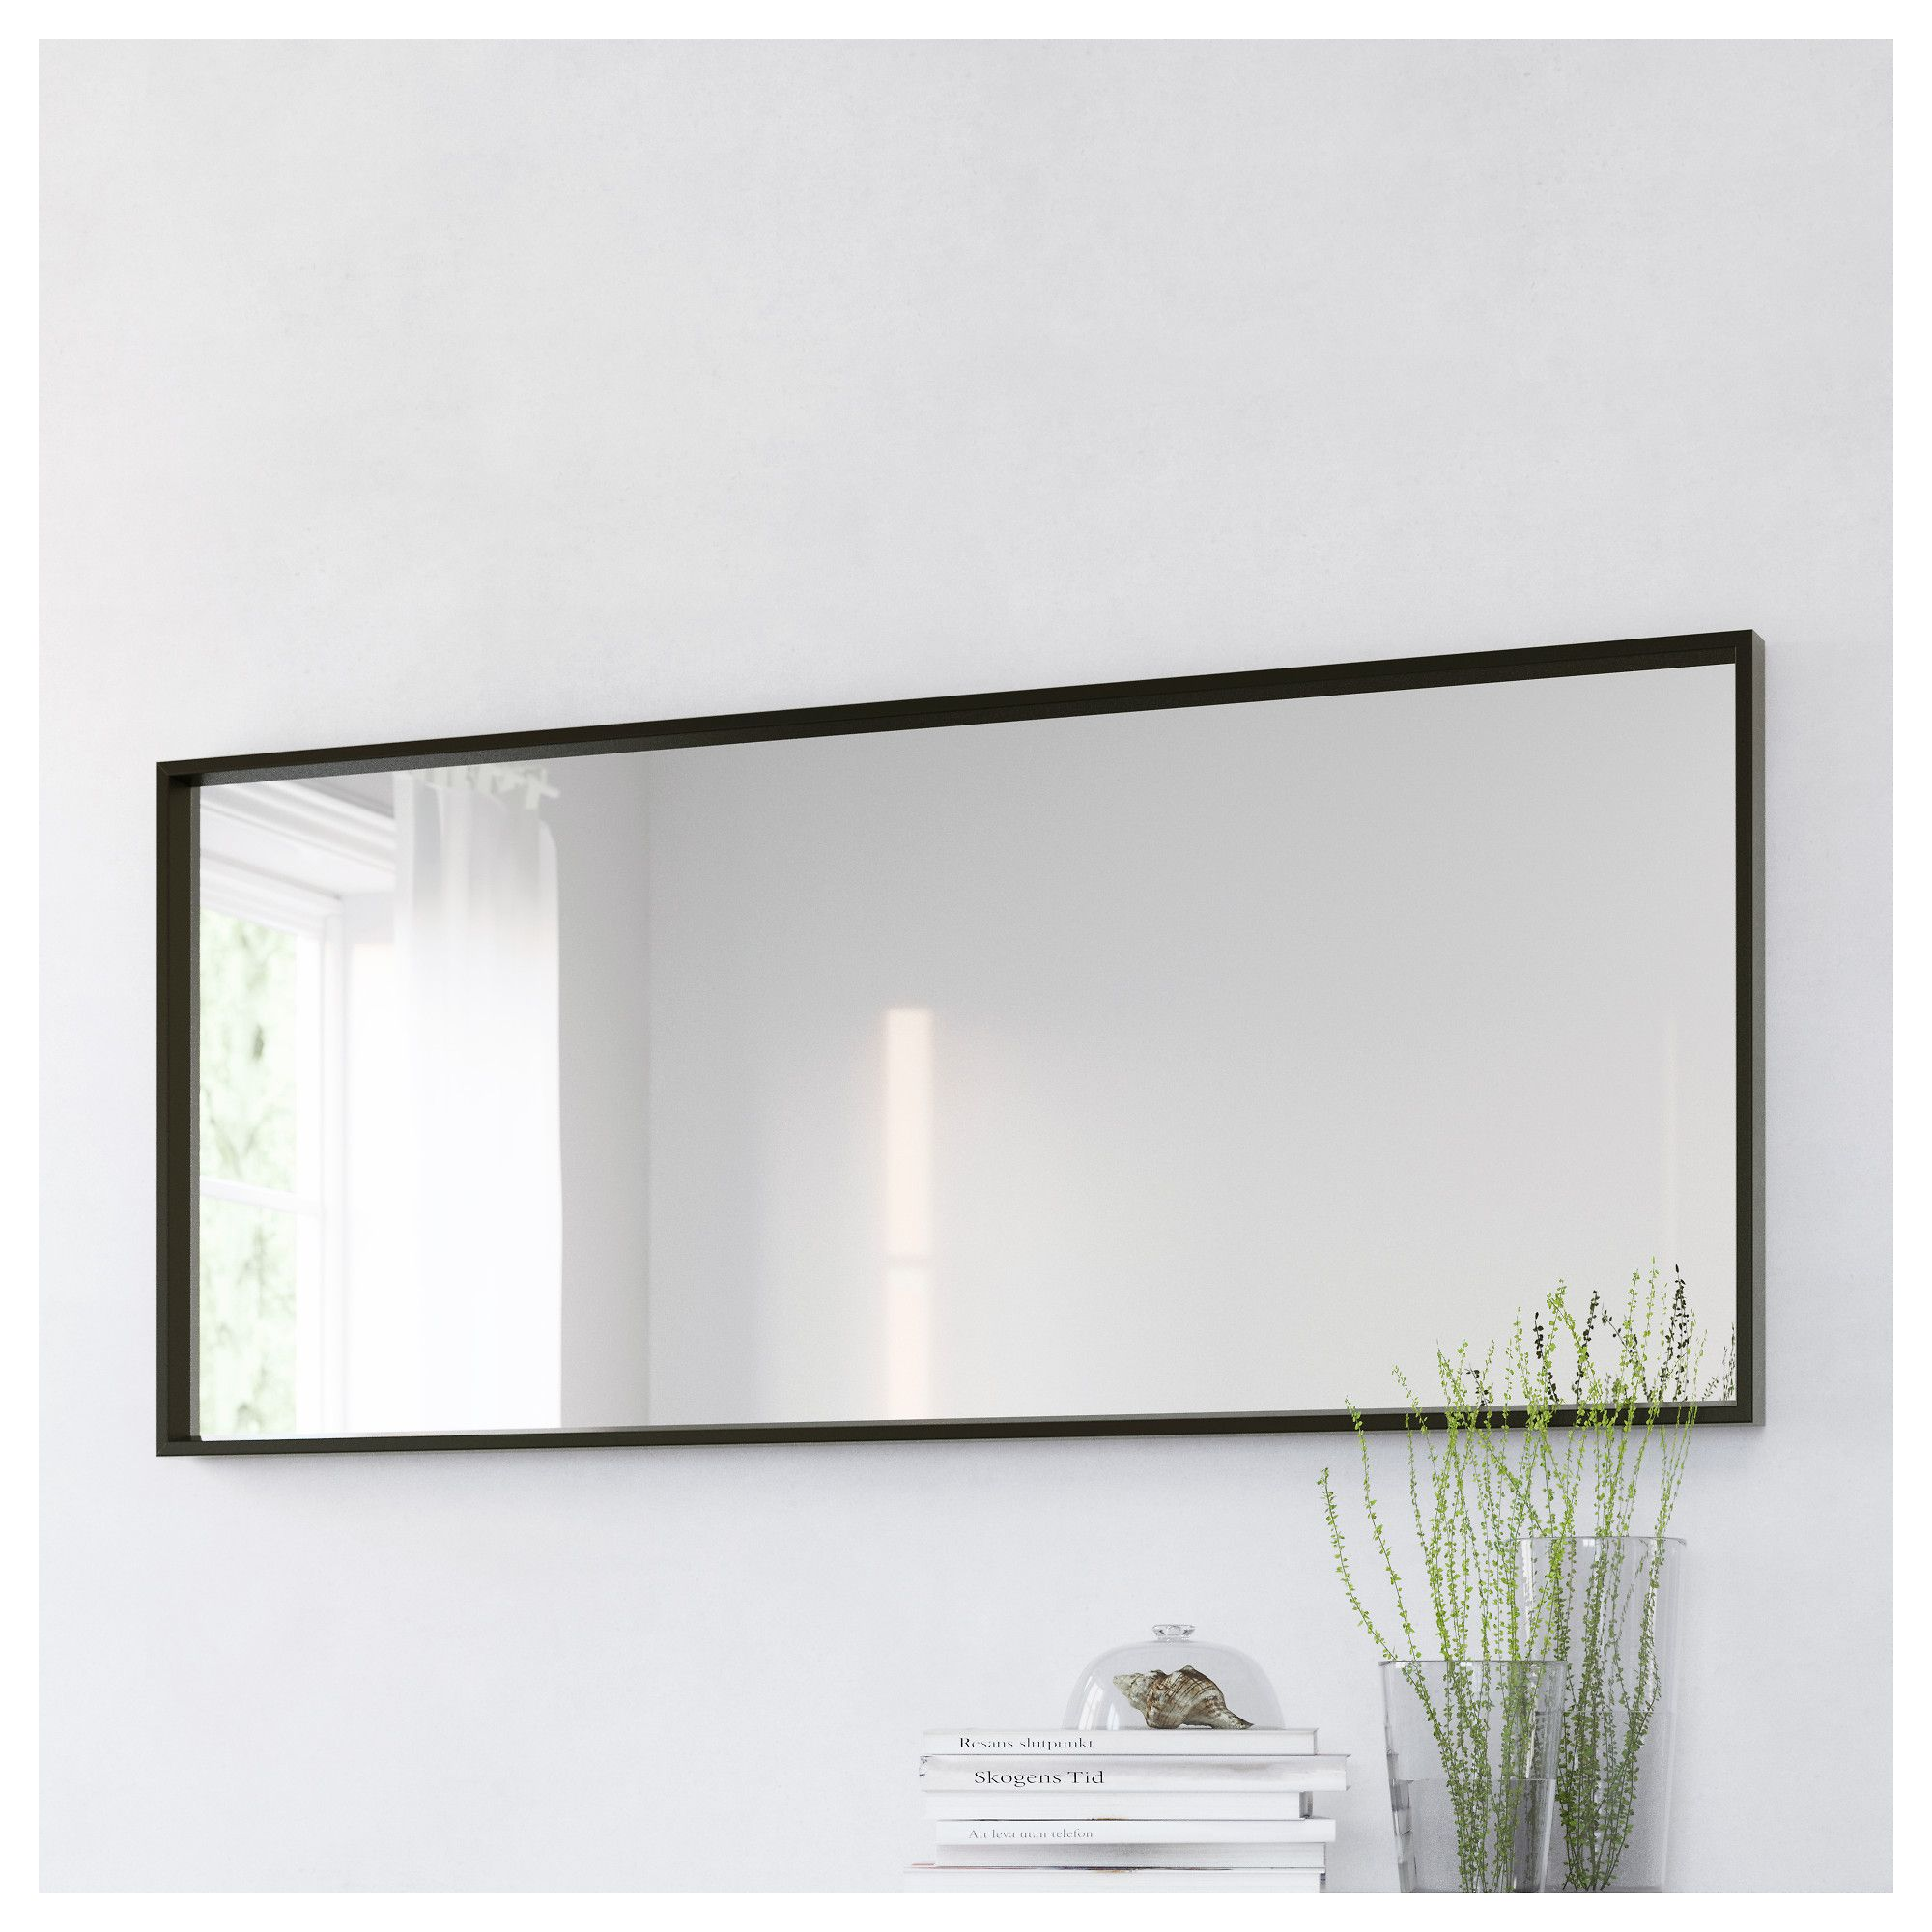 nissedal mirror black ikea badkamers mirror decor living room ikea mirror en horizontal mirrors. Black Bedroom Furniture Sets. Home Design Ideas